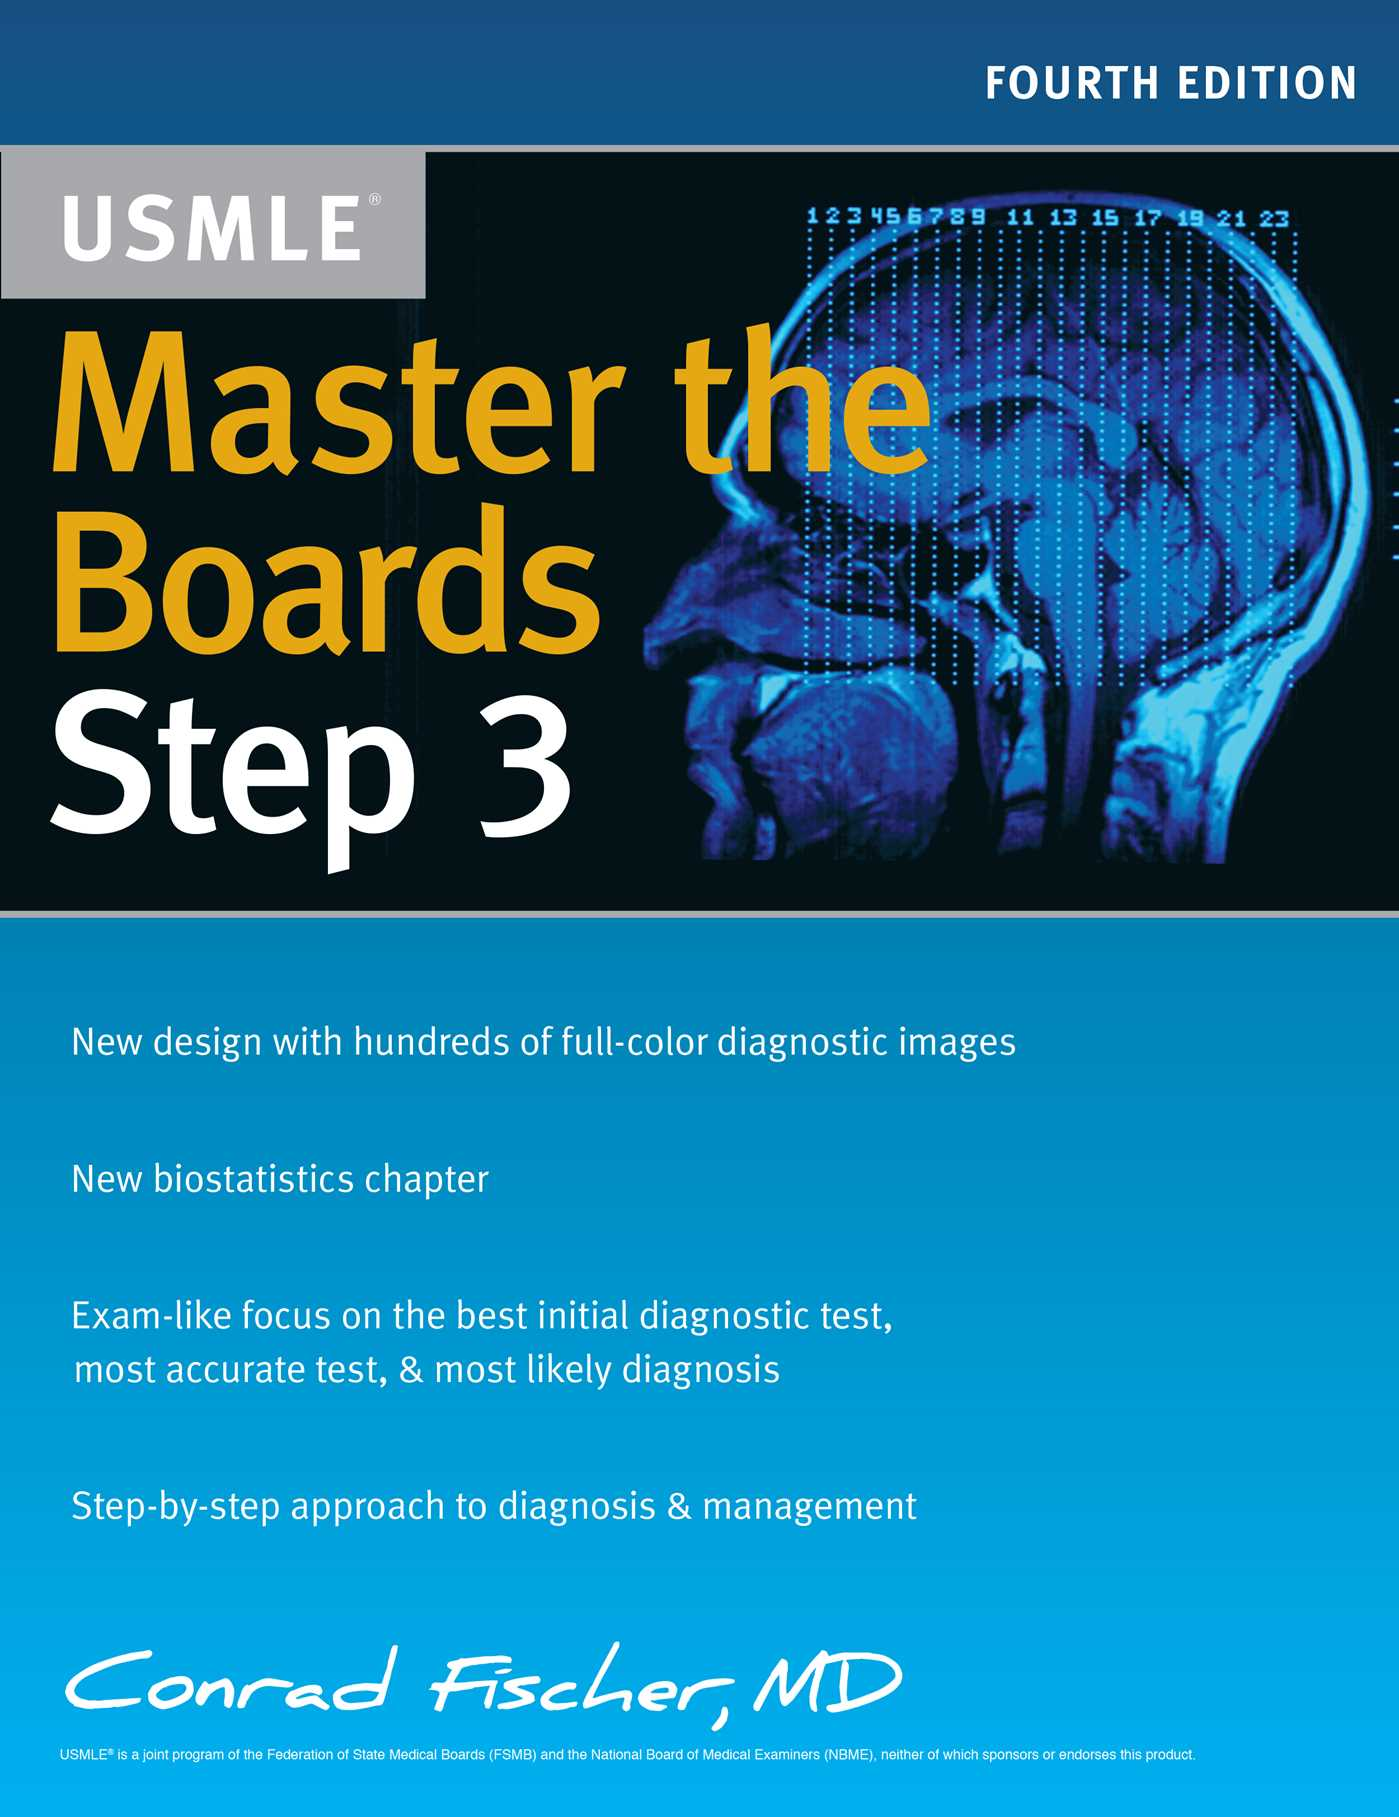 Master the boards usmle step 3 9781506208428 hr